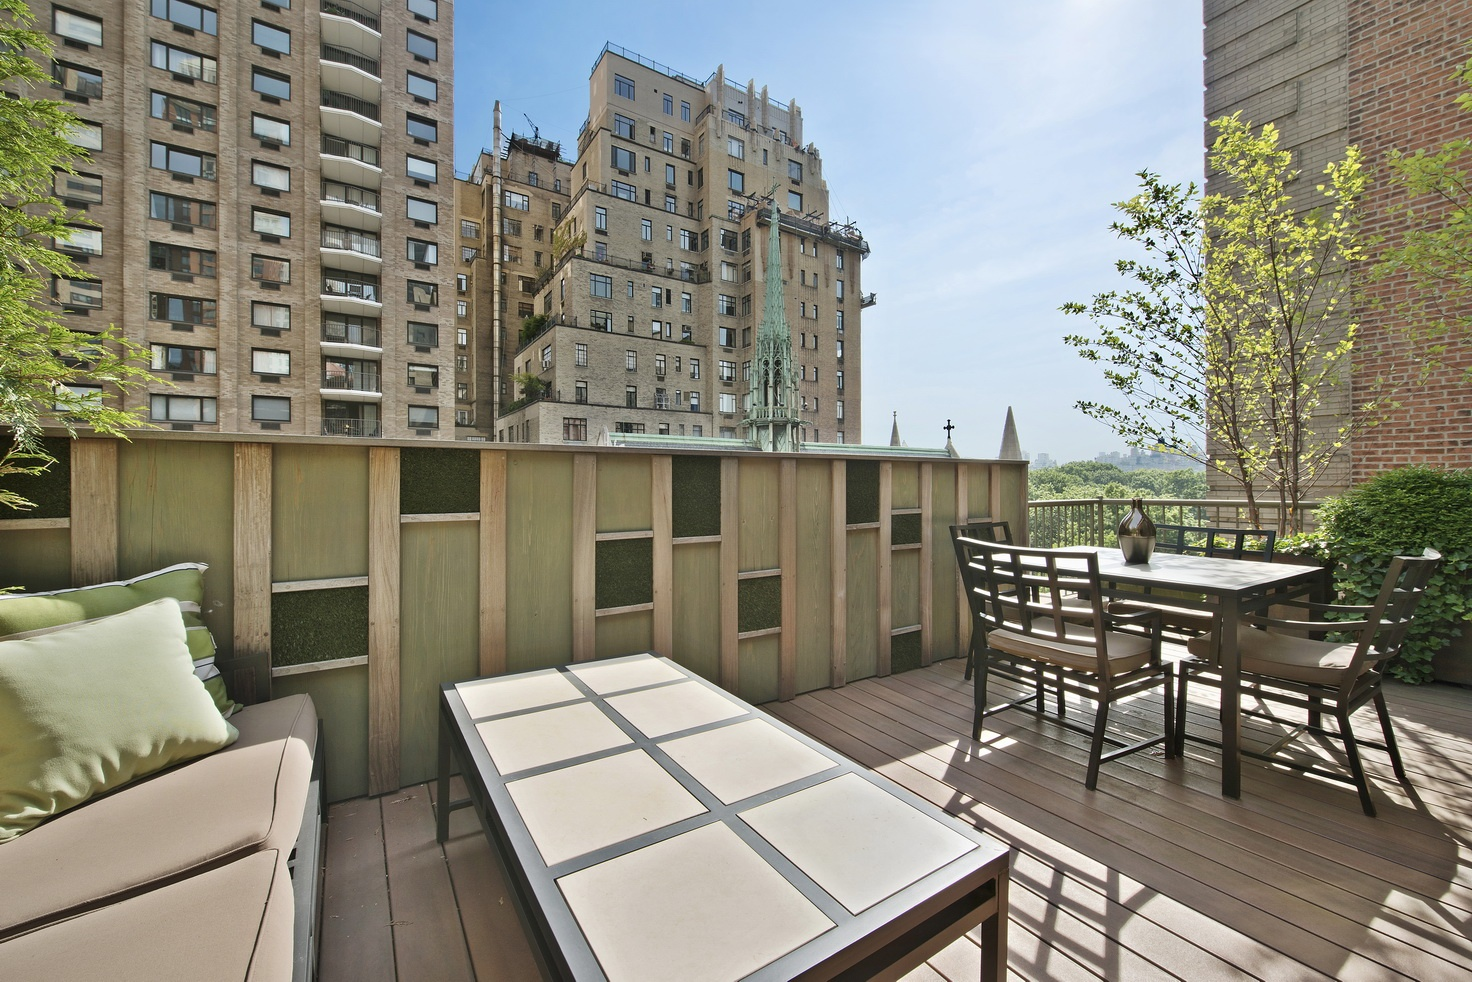 Central park west duplex penthouse 4 bed 5 bath in lincoln for Central park penthouses for sale